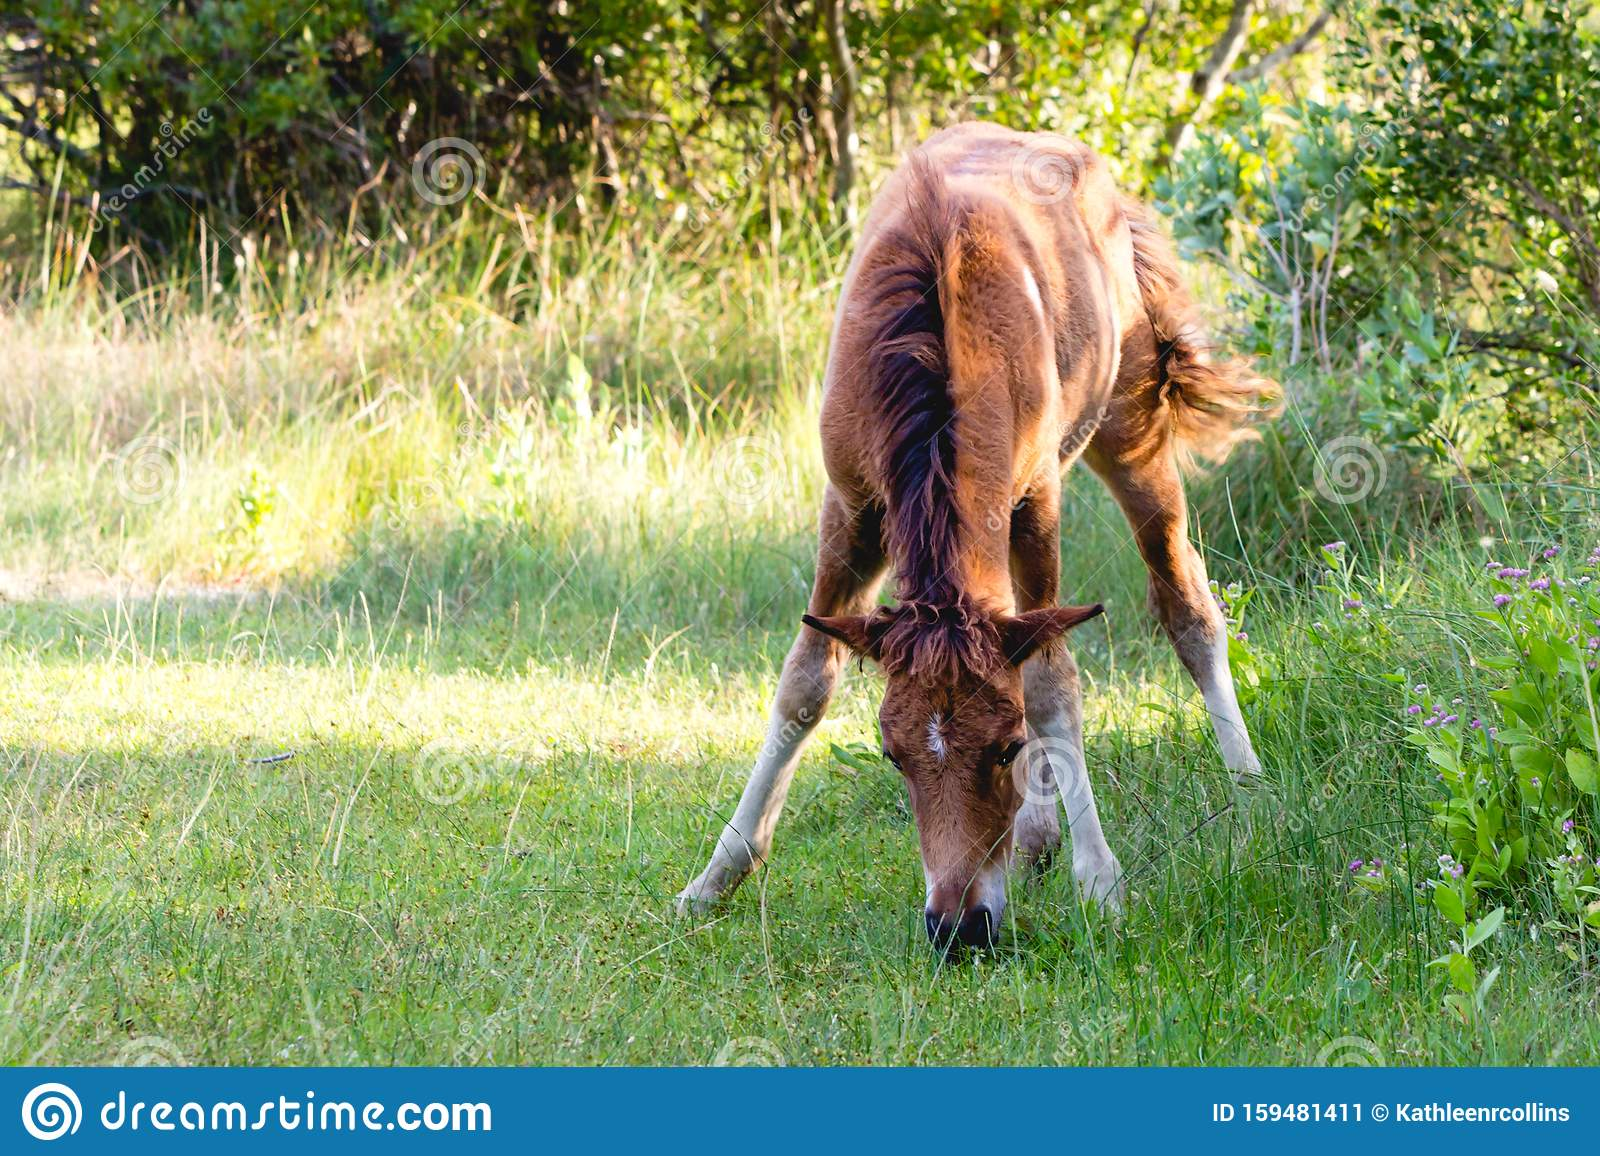 One Chestnut Brown Baby Horse Grazing In Grassy Field Stock Image Image Of Mare Graze 159481411